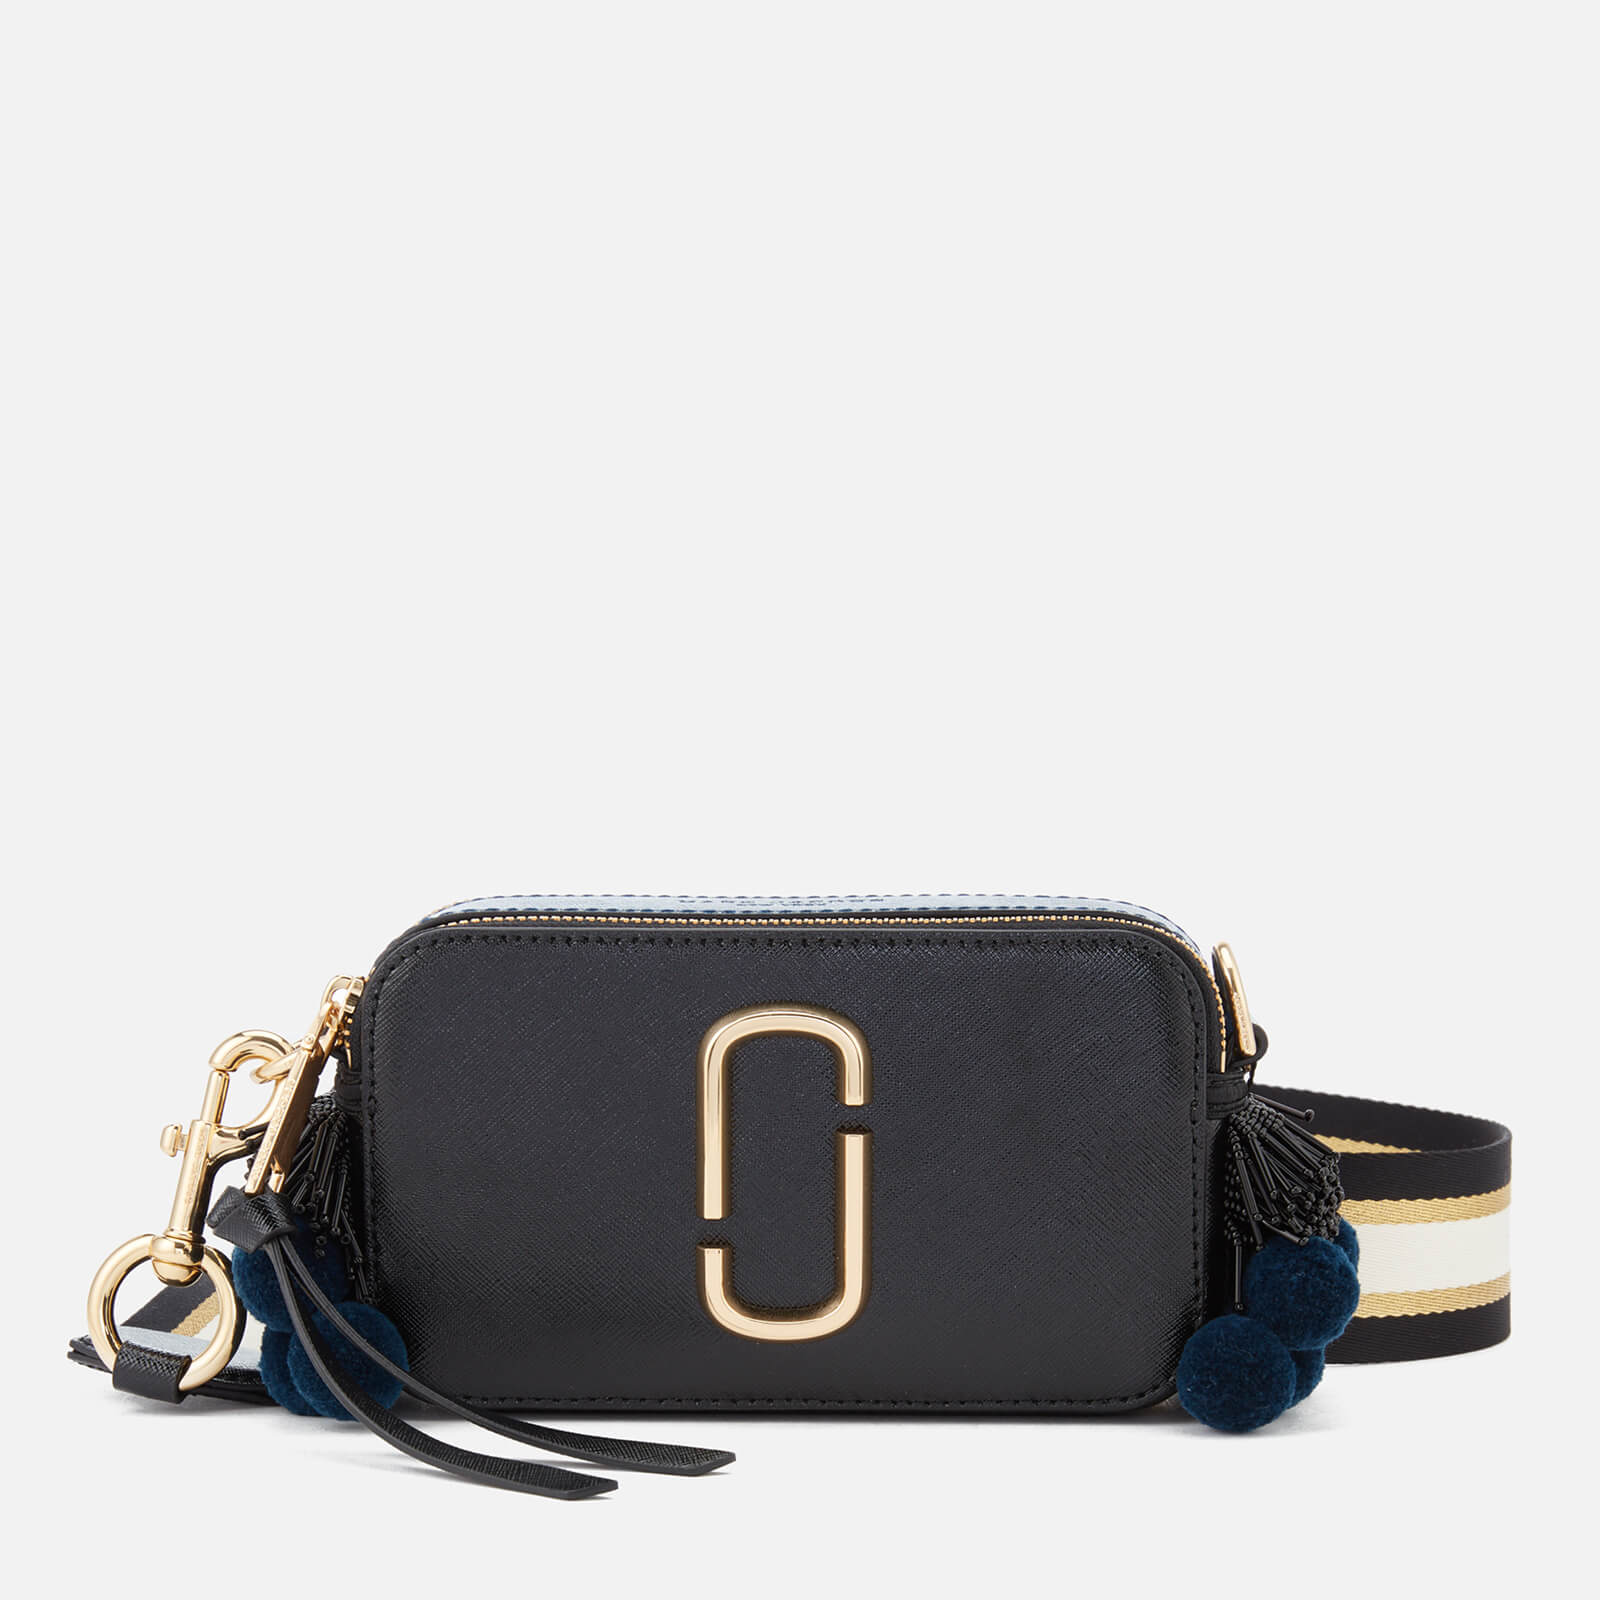 47e4698b1d Marc Jacobs Women's Snapshot Beads and Poms Bag - Black/Multi - Free UK  Delivery over £50